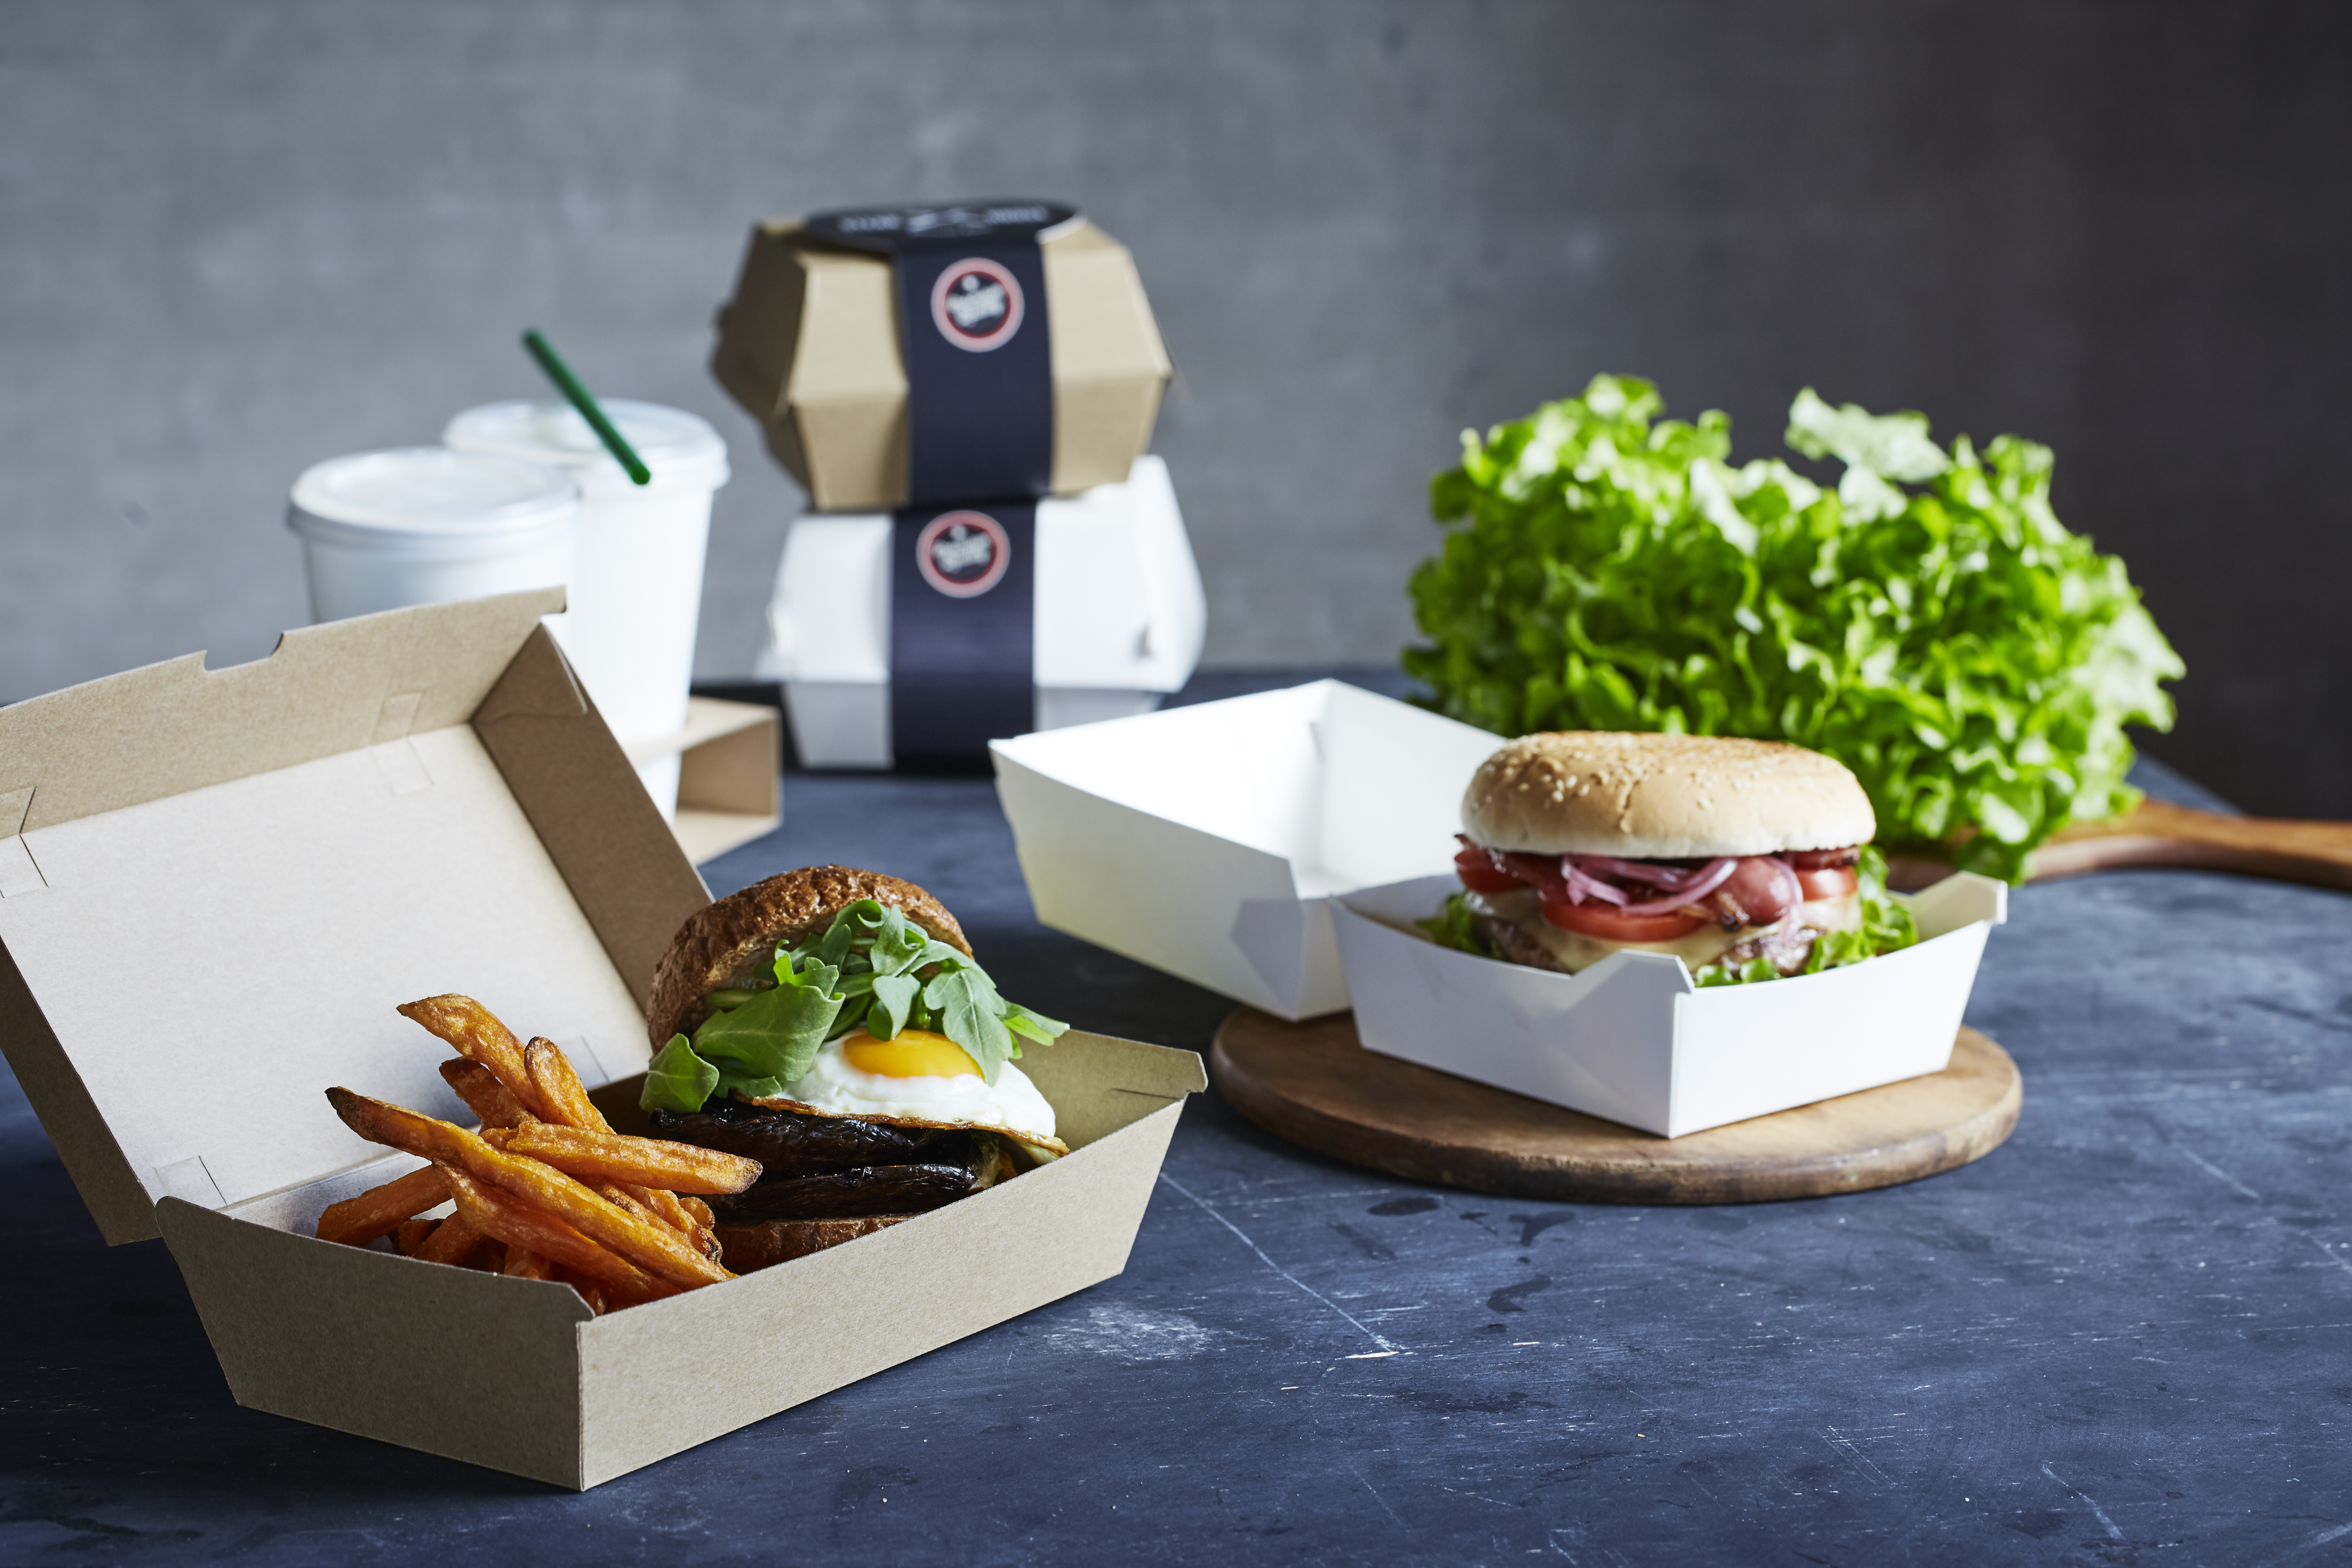 Burgers packaged in cartons for food delivery.